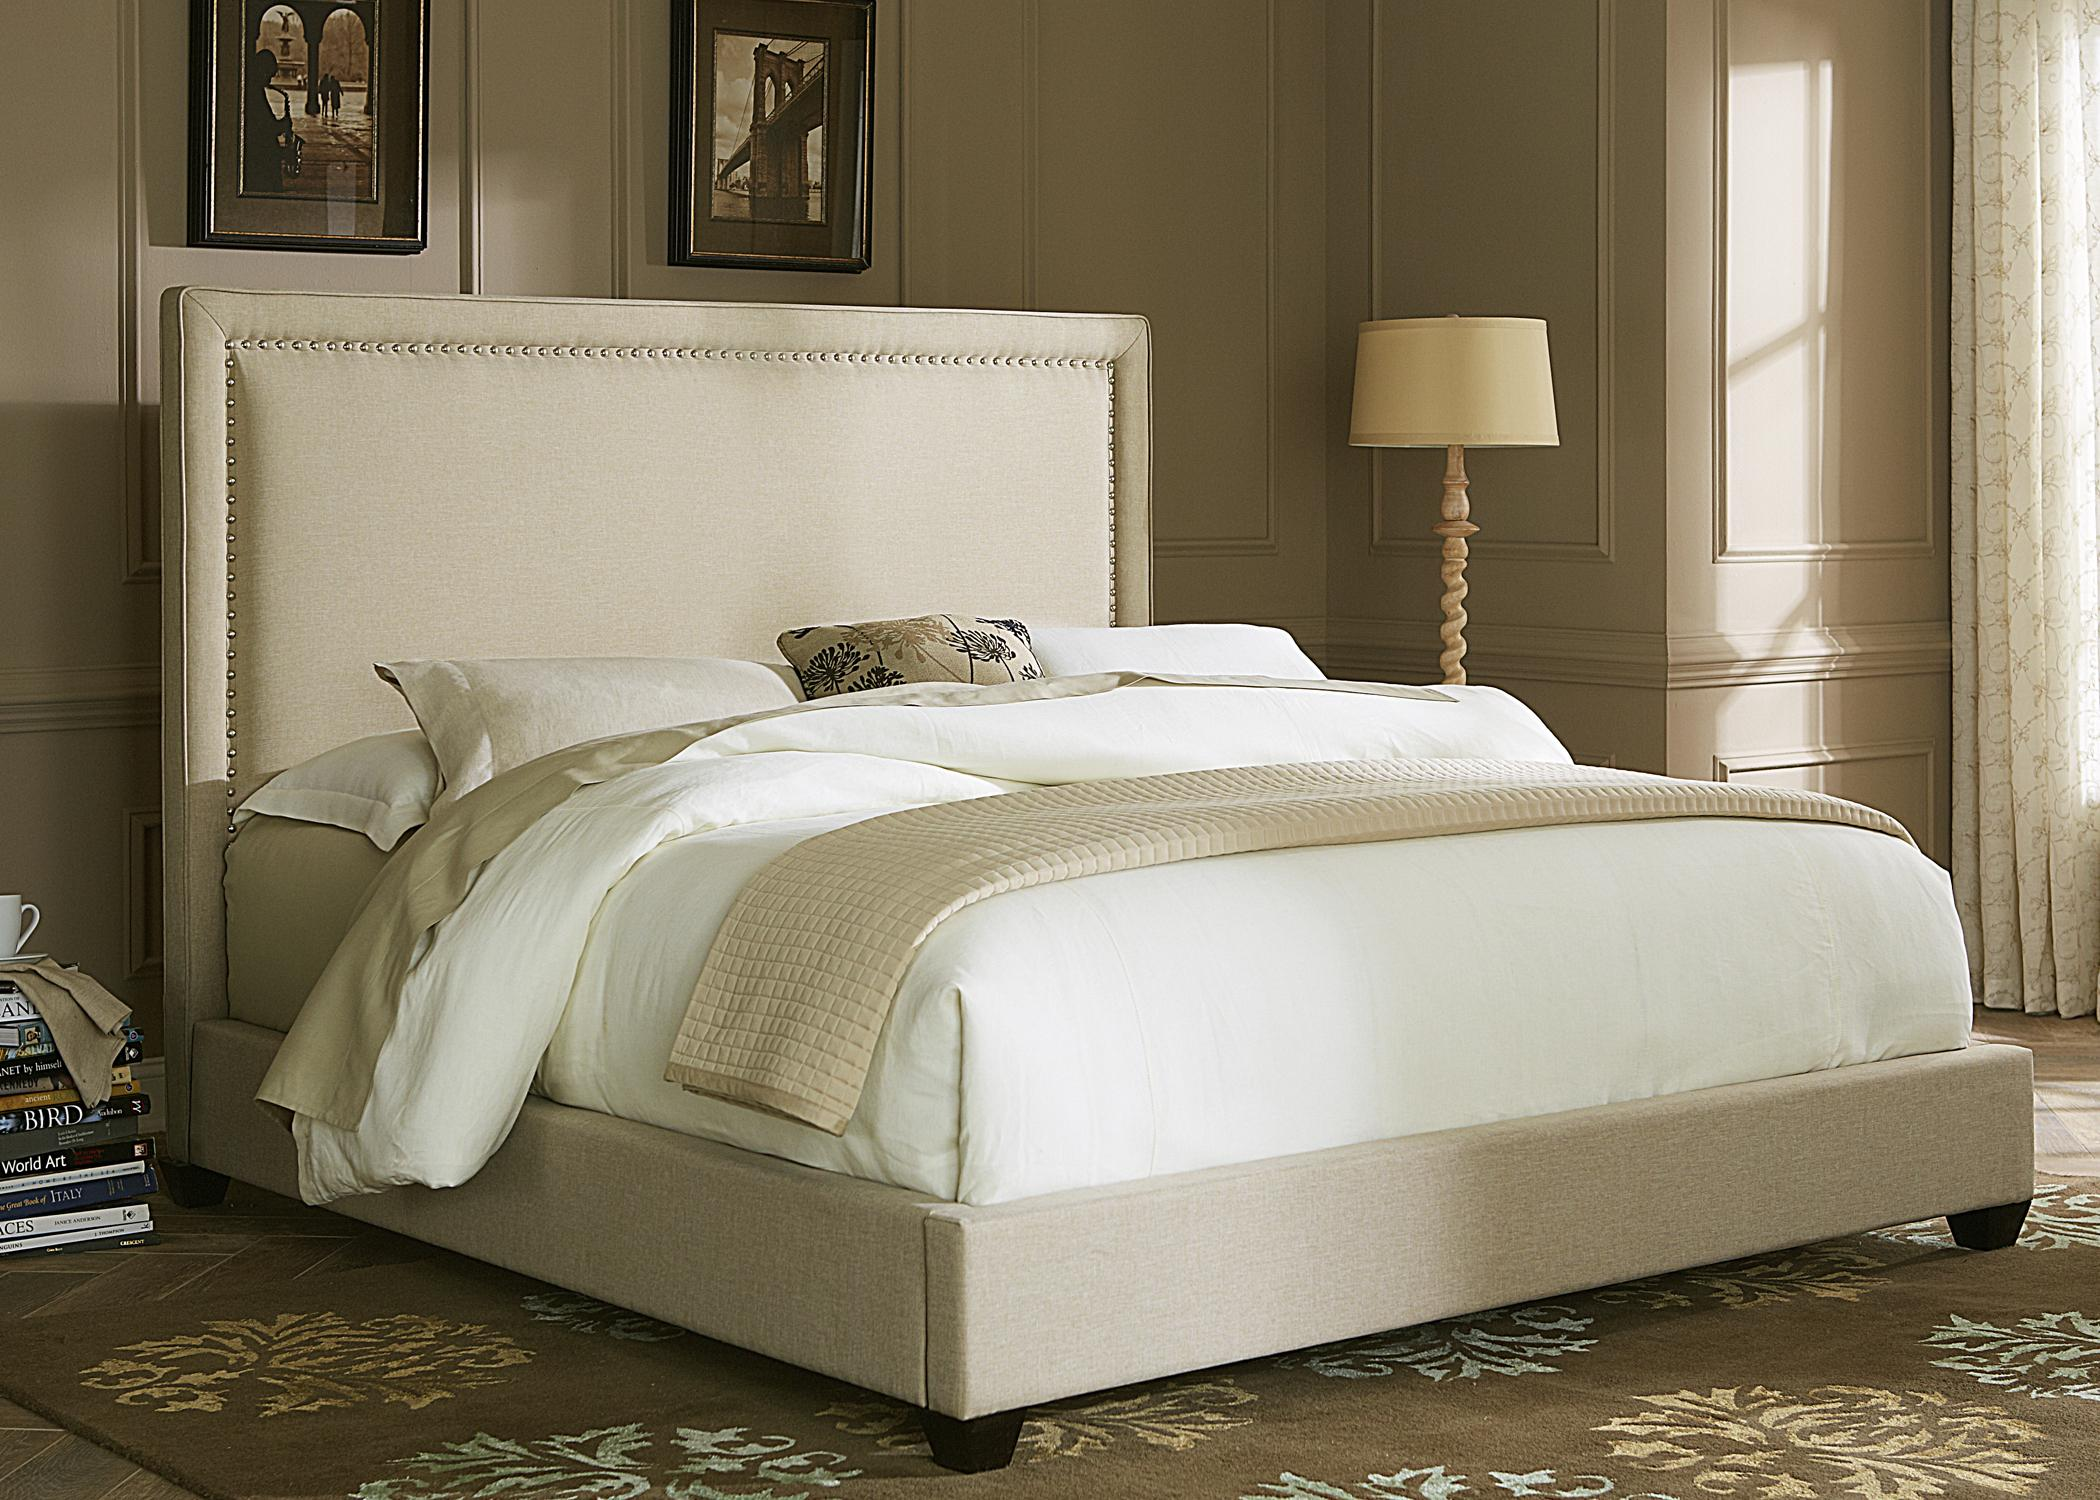 Liberty Furniture Upholstered Beds 100 Br Qpb Queen